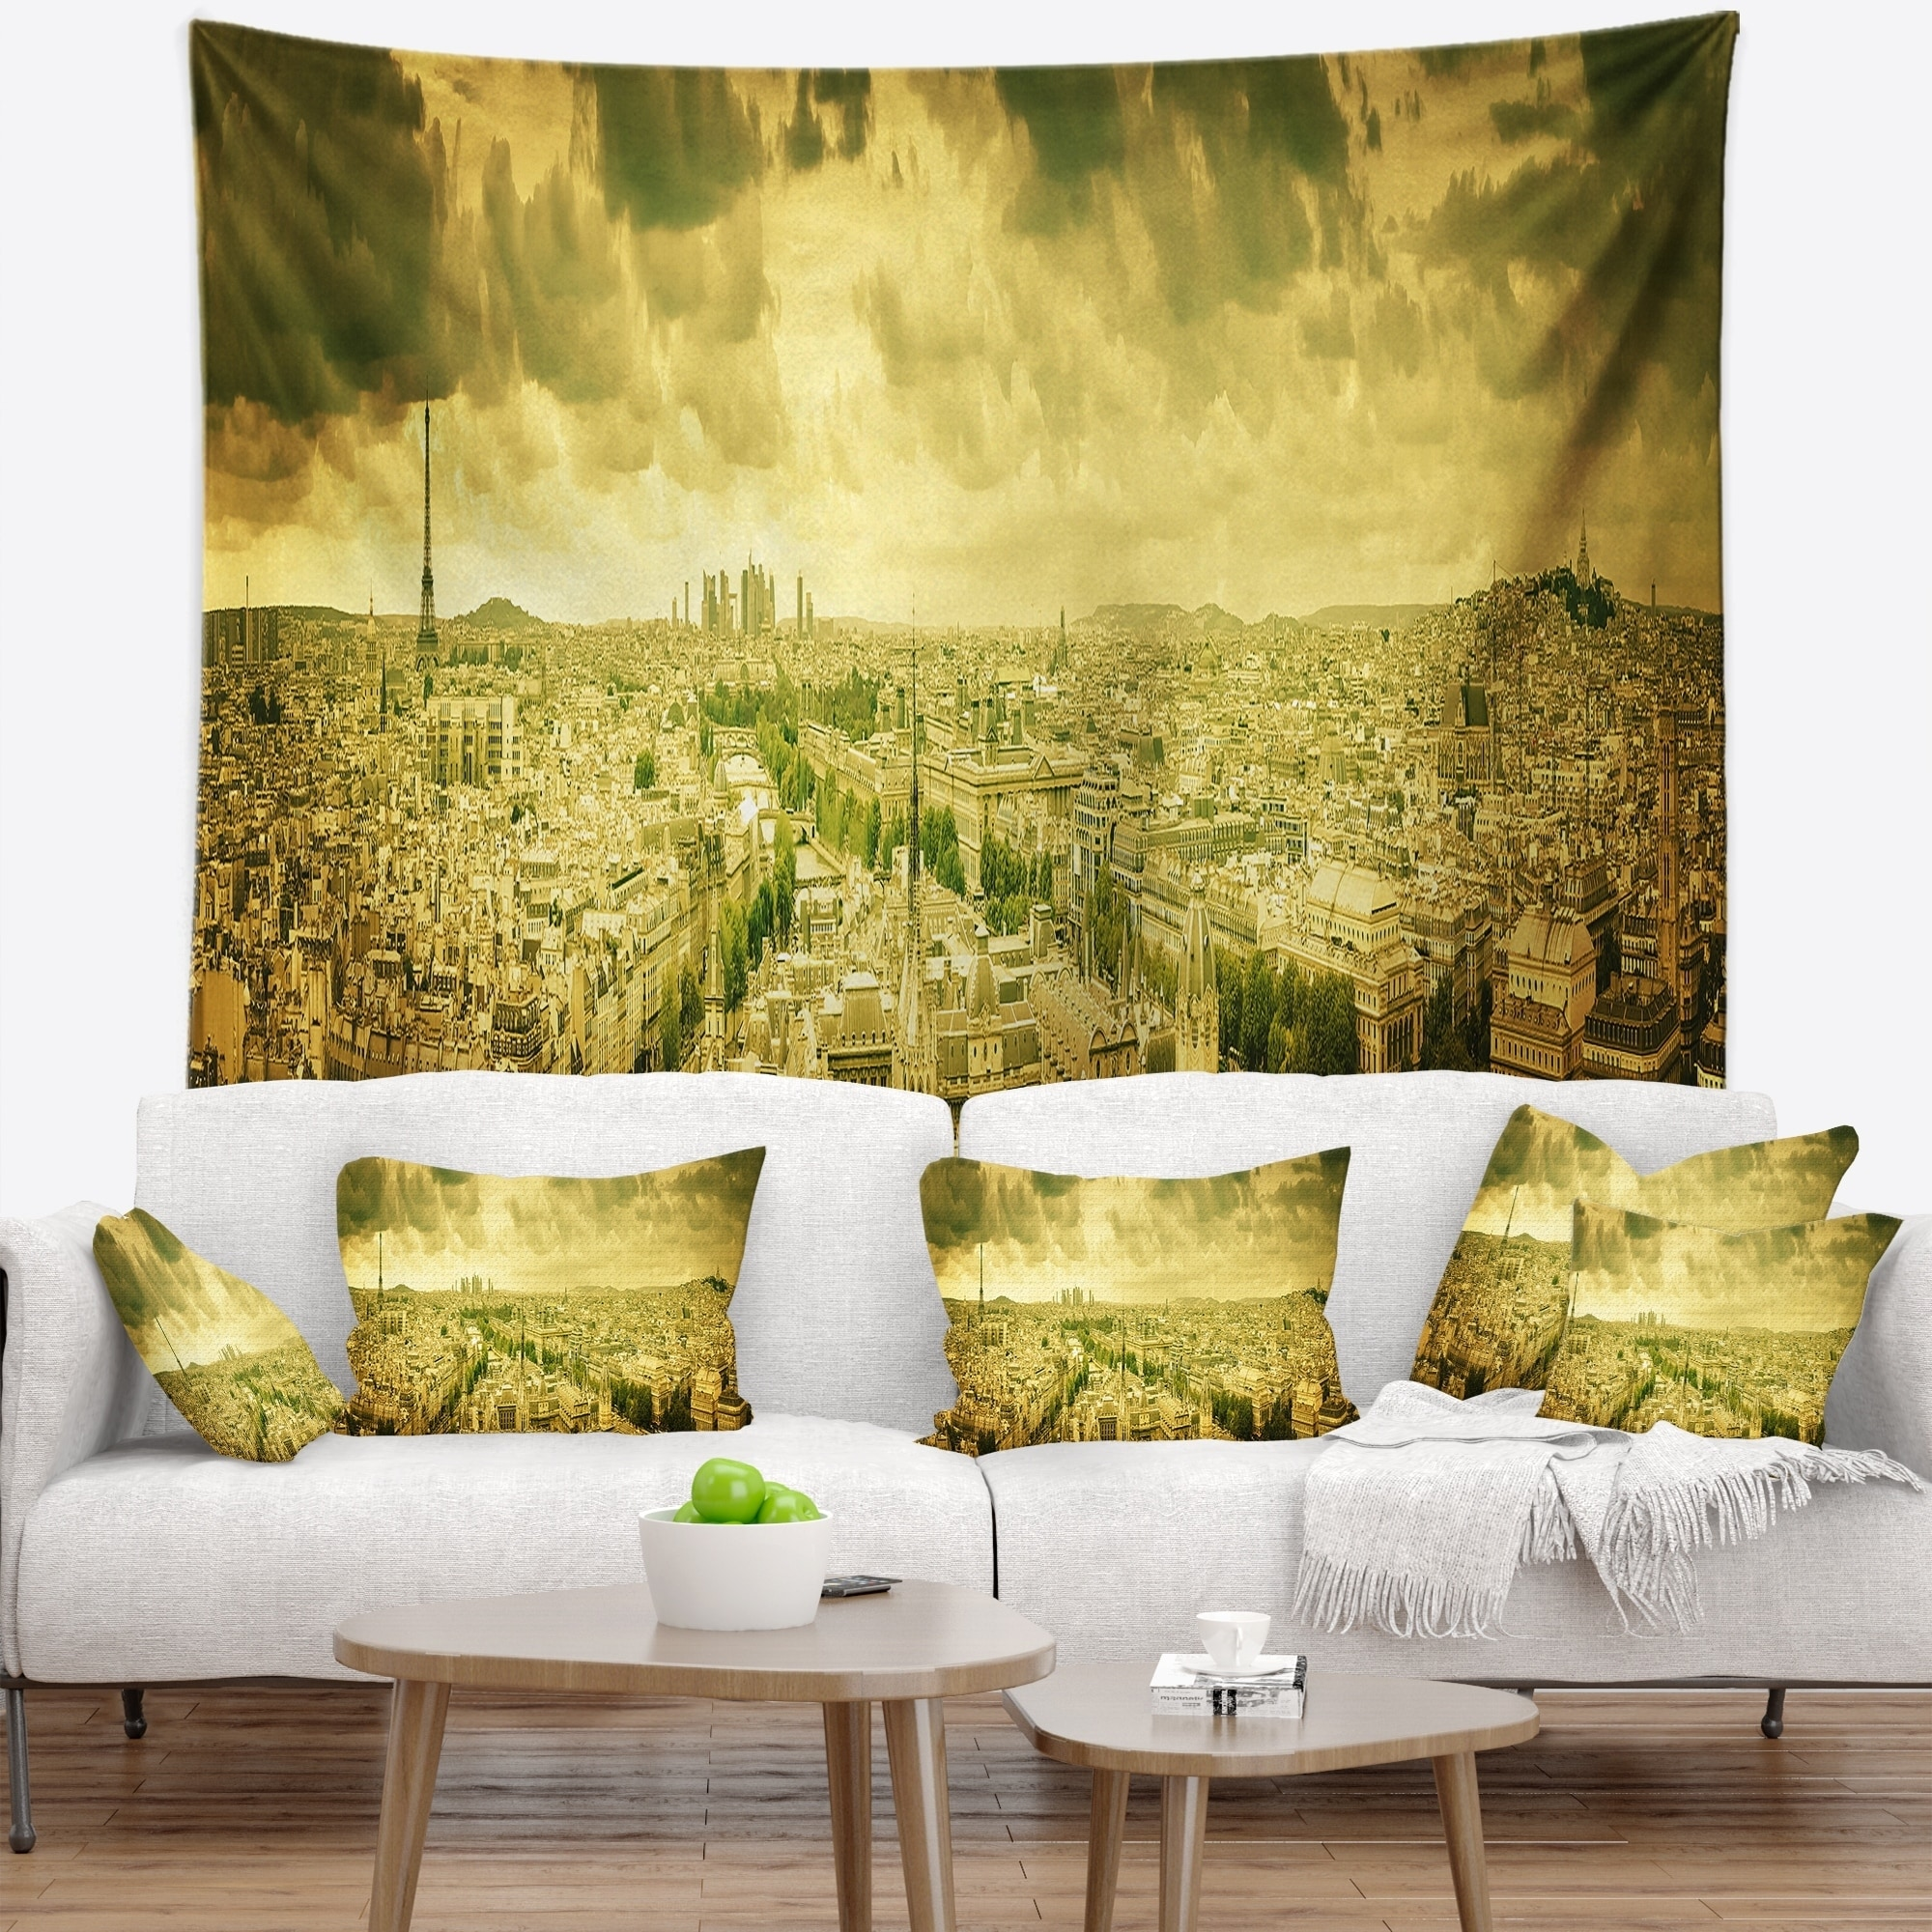 Designart Paris Panorama With Scenic Sky Skyline Photography Wall Tapestry On Sale Overstock 20922000